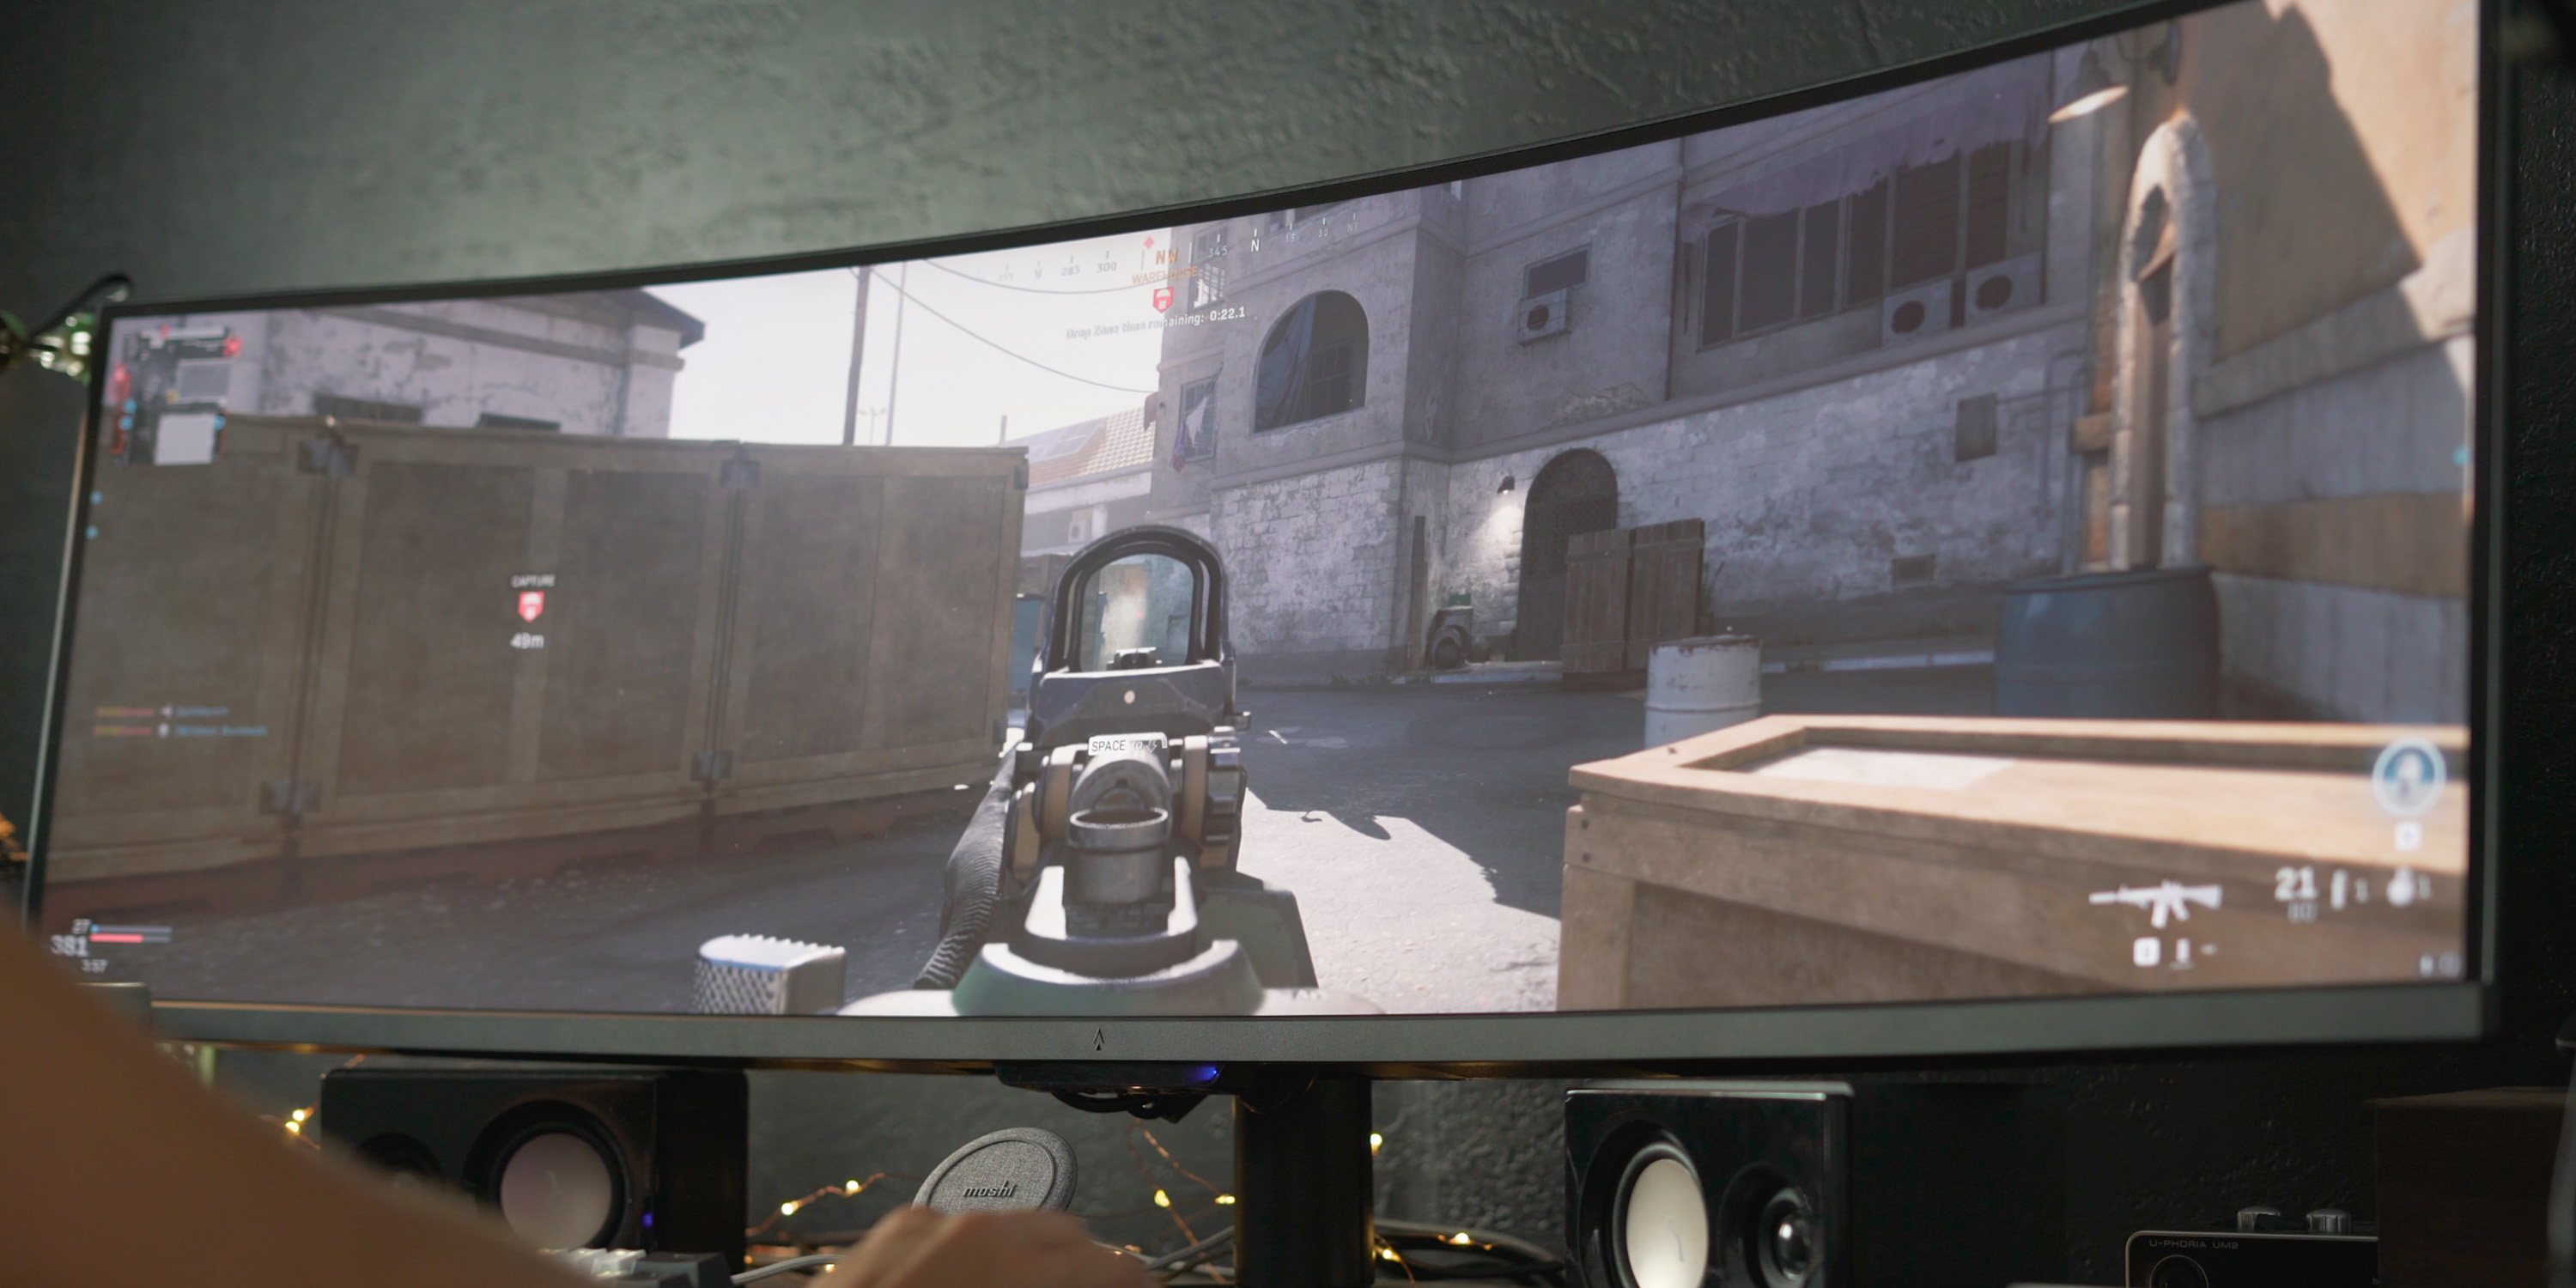 Playing Call of Duty at full resolution on the Dark Matter 49-inch gaming monitor